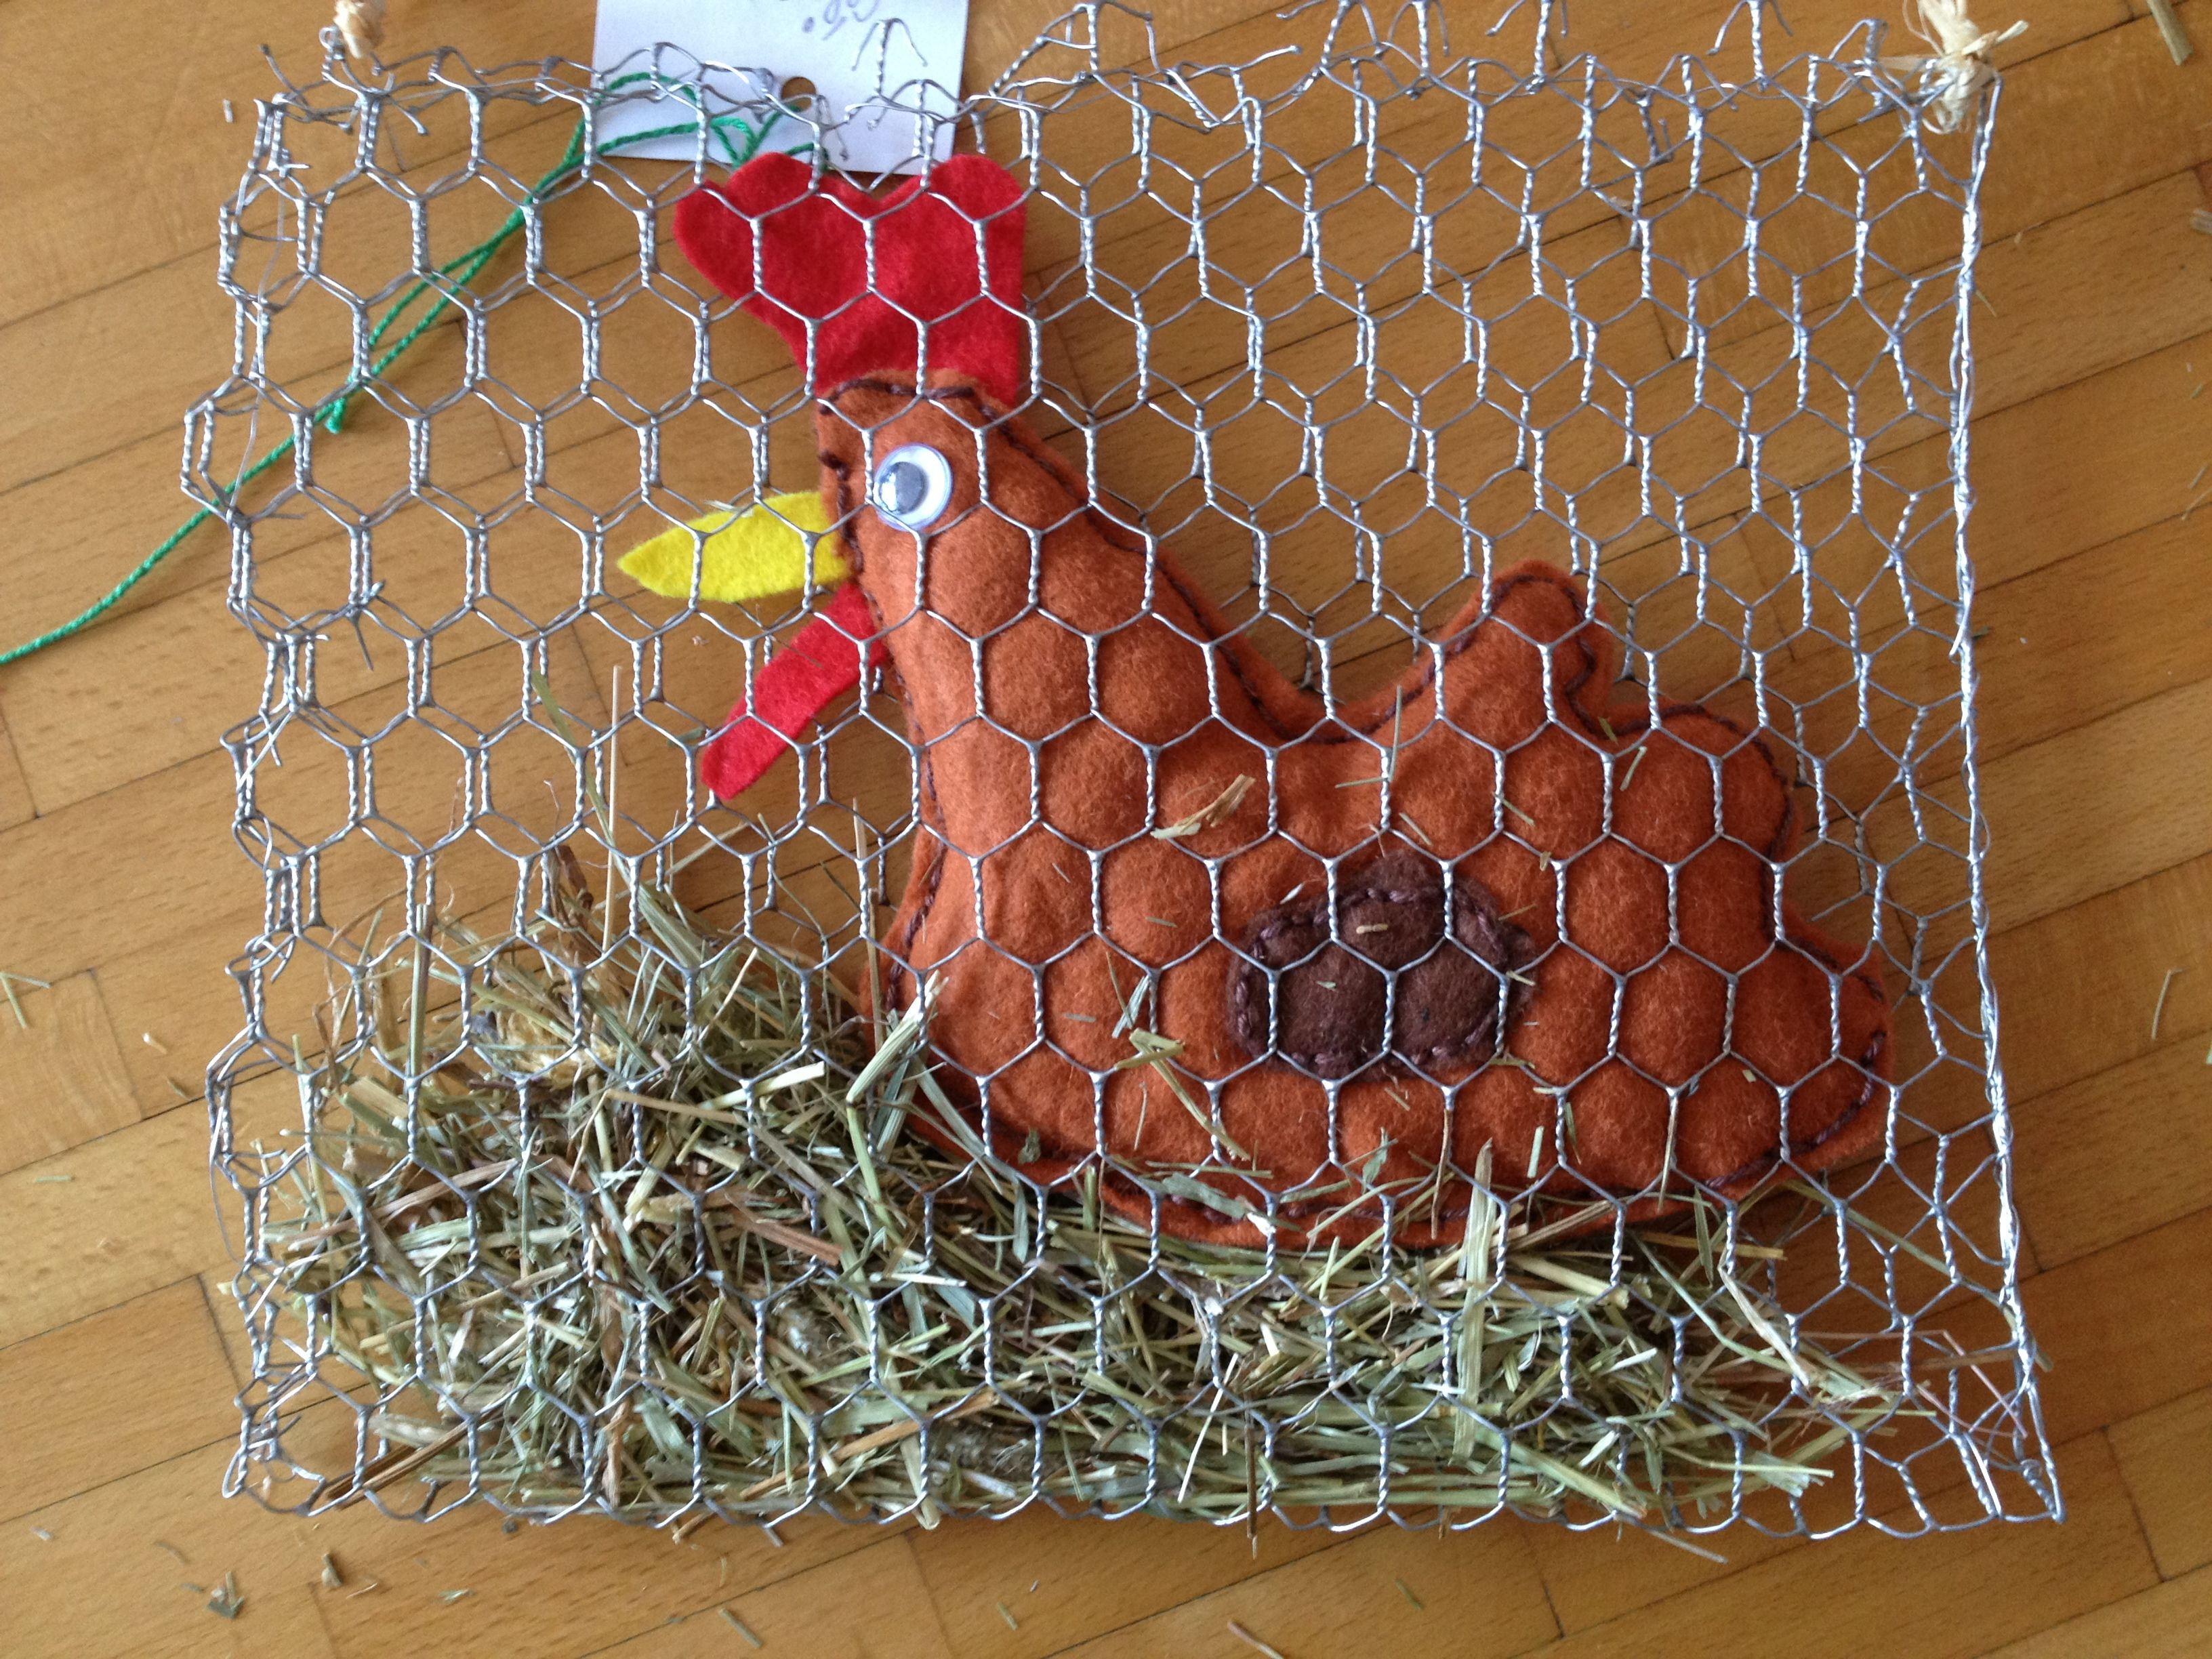 Poule derri re son grillage p ques pinterest easter crafts easter and - Grillage poule castorama ...